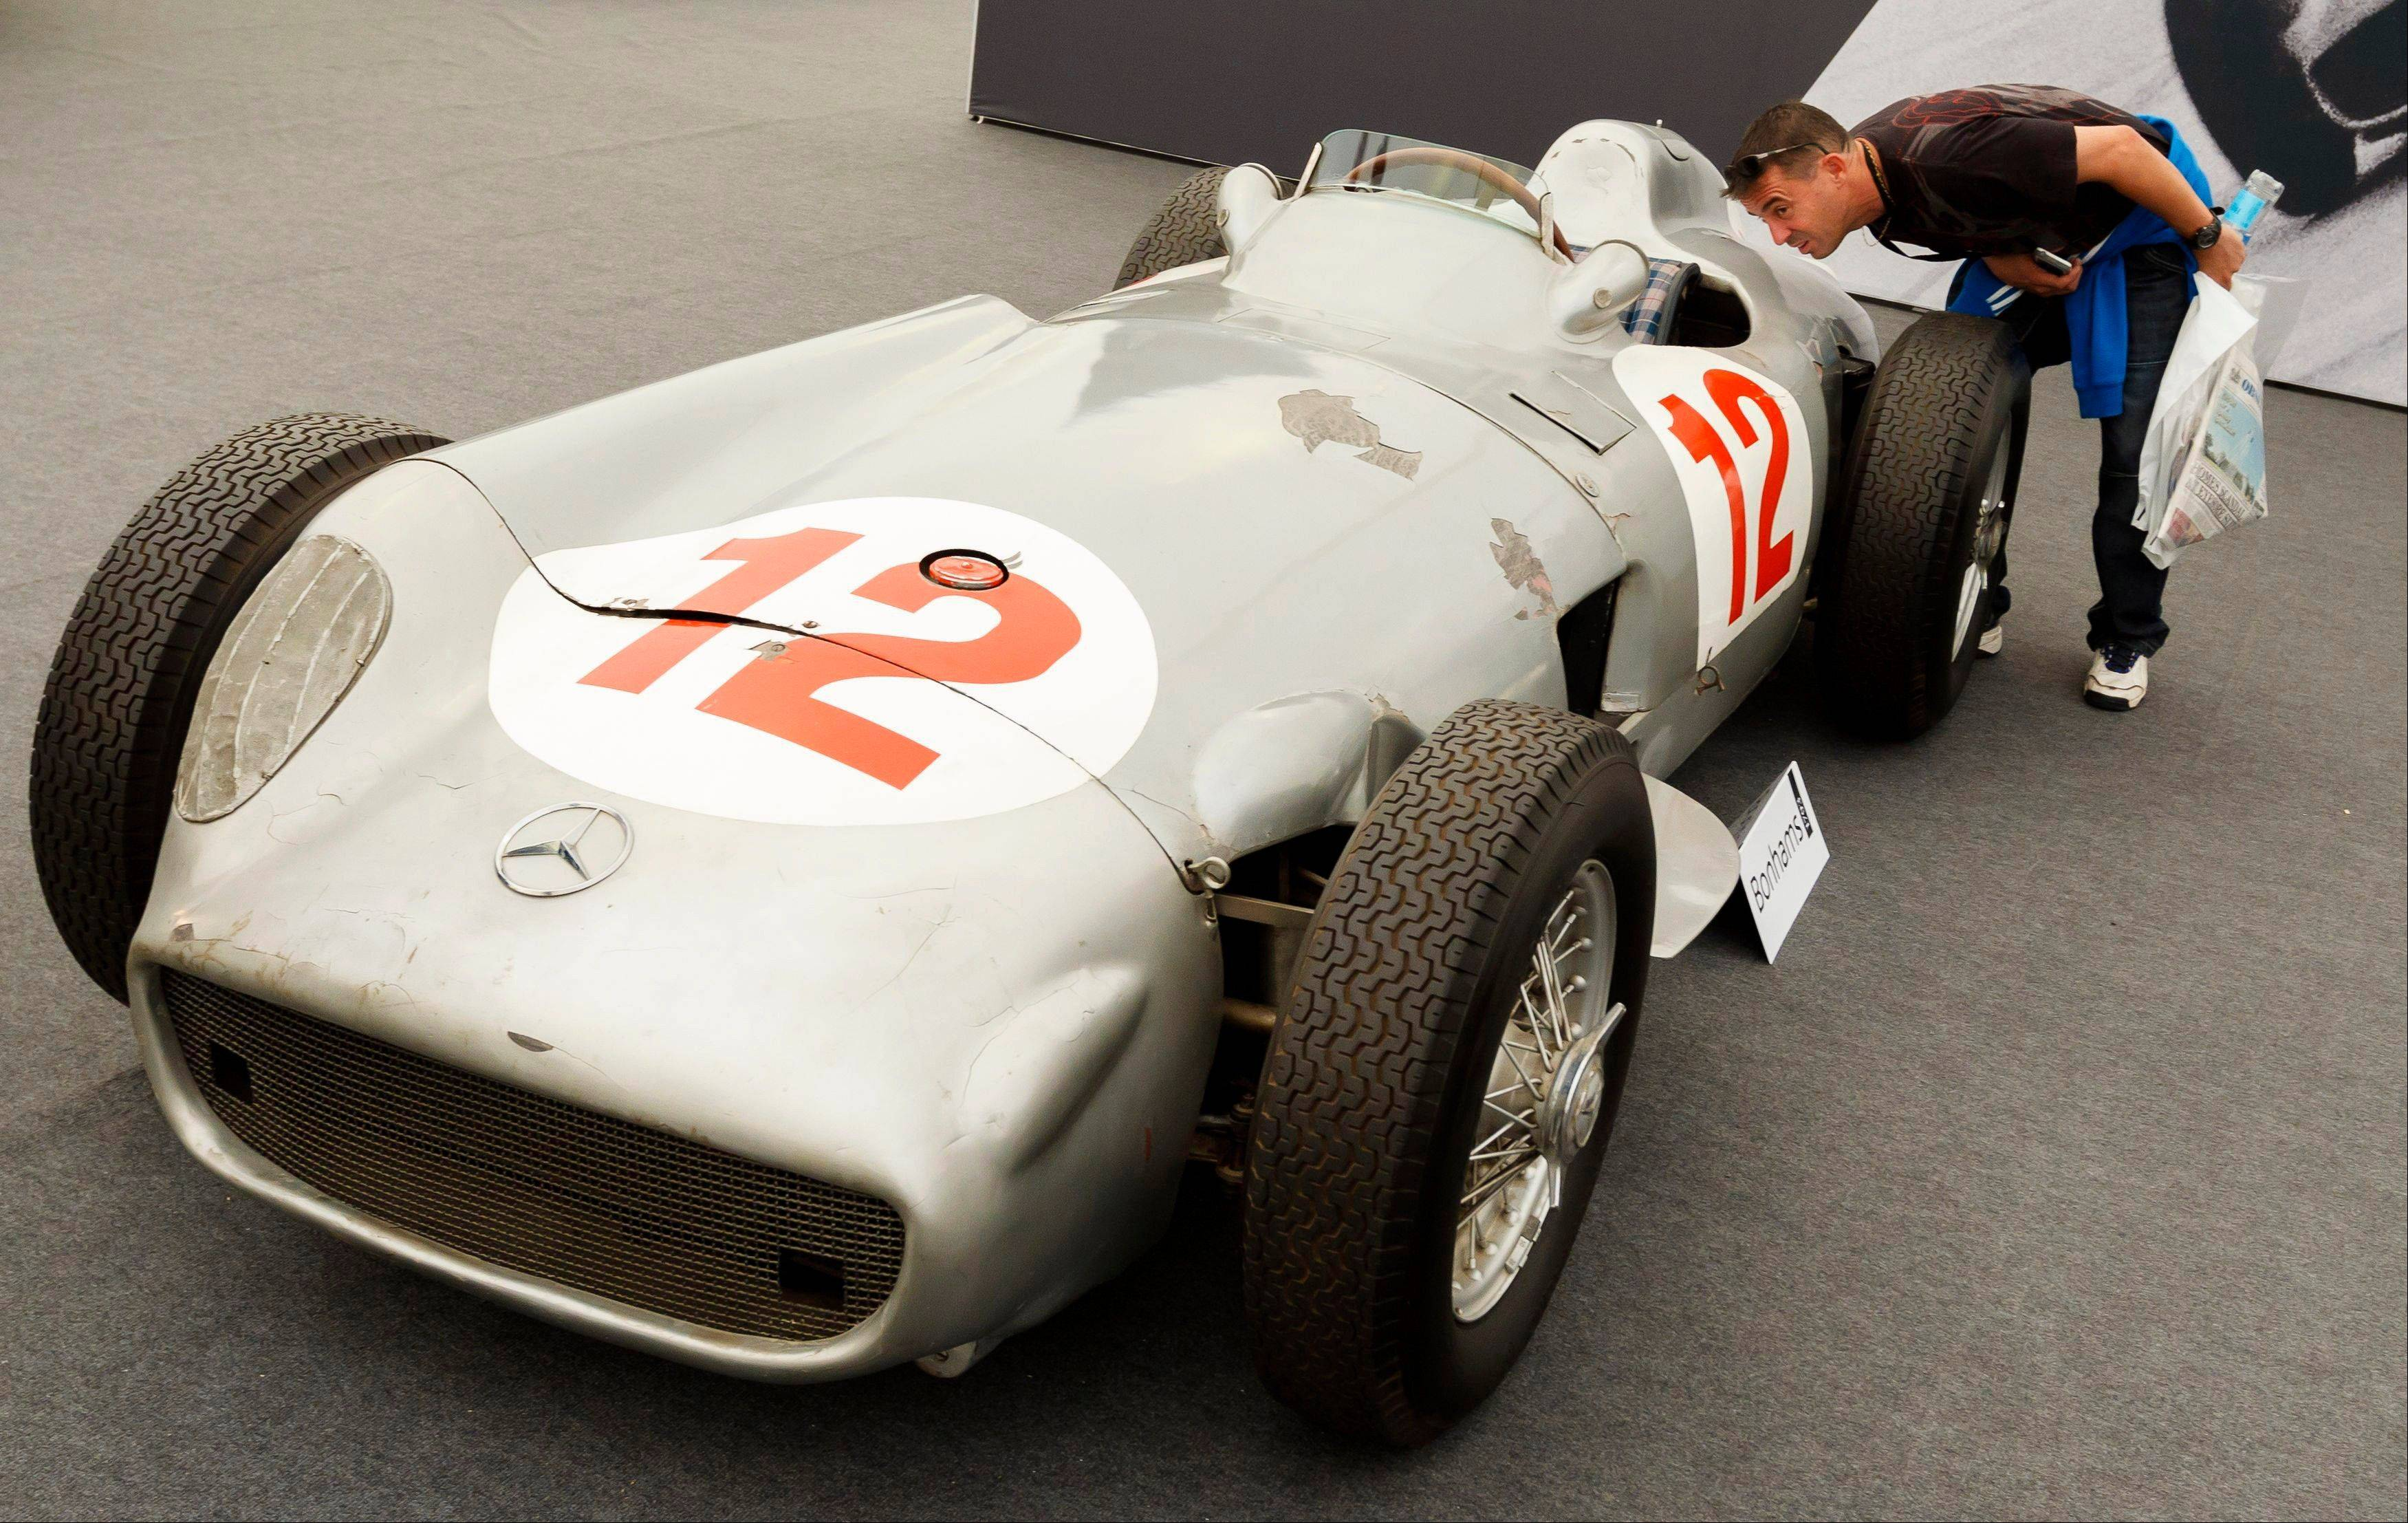 A man looks inside a 1954 Mercedes-Benz W196 single-seater race car Thursday that was once driven by Formula One legend Juan Manuel Fangio, as it is displayed by an auction house at the Festival of Speed in Goodwood, near Chichester, England.